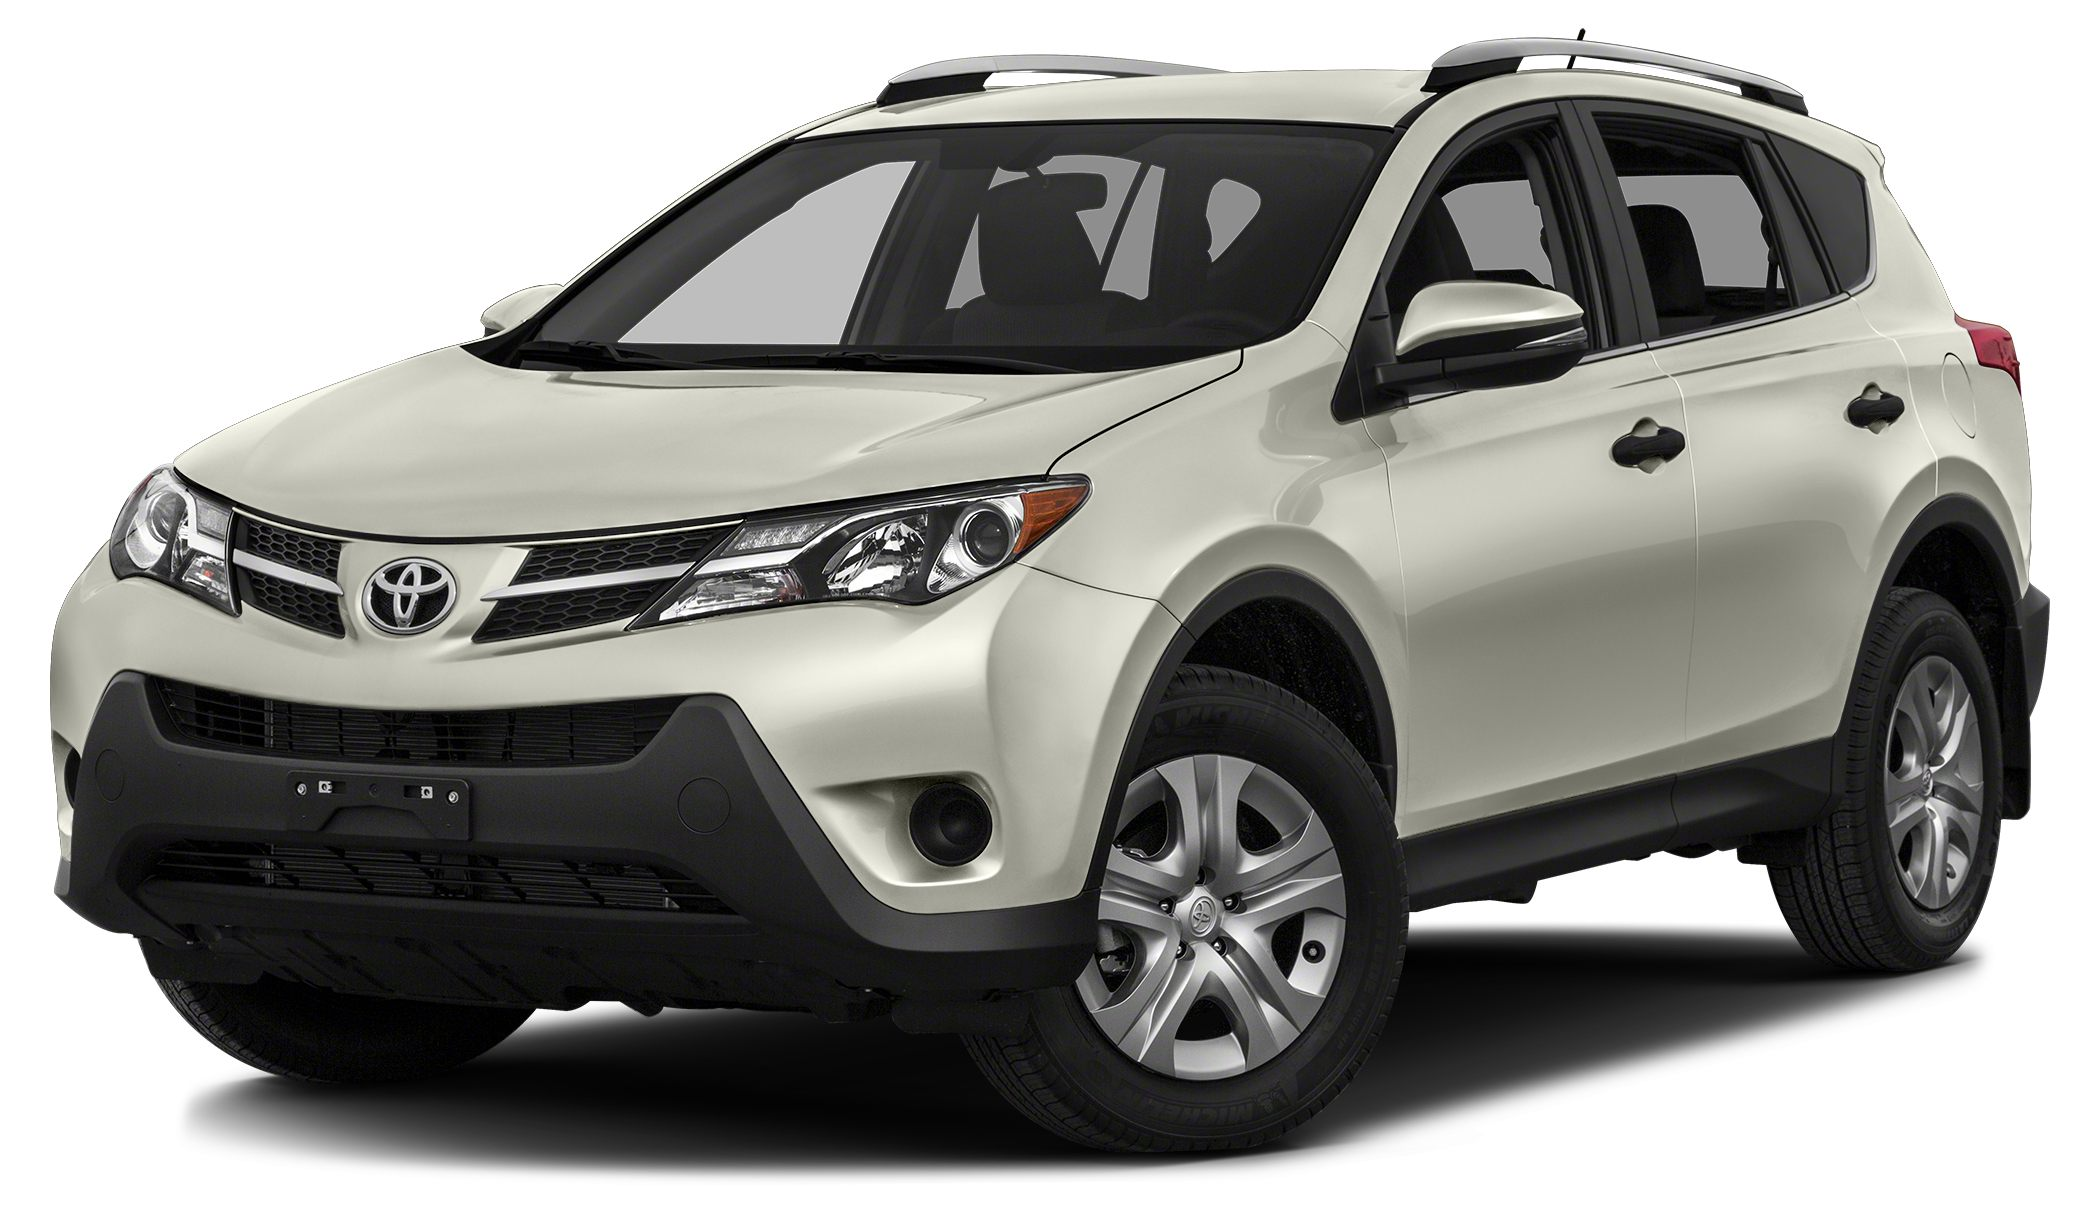 2014 Toyota RAV4 Limited EPA 29 MPG Hwy22 MPG City CARFAX 1-Owner GREAT MILES 35652 Limited t